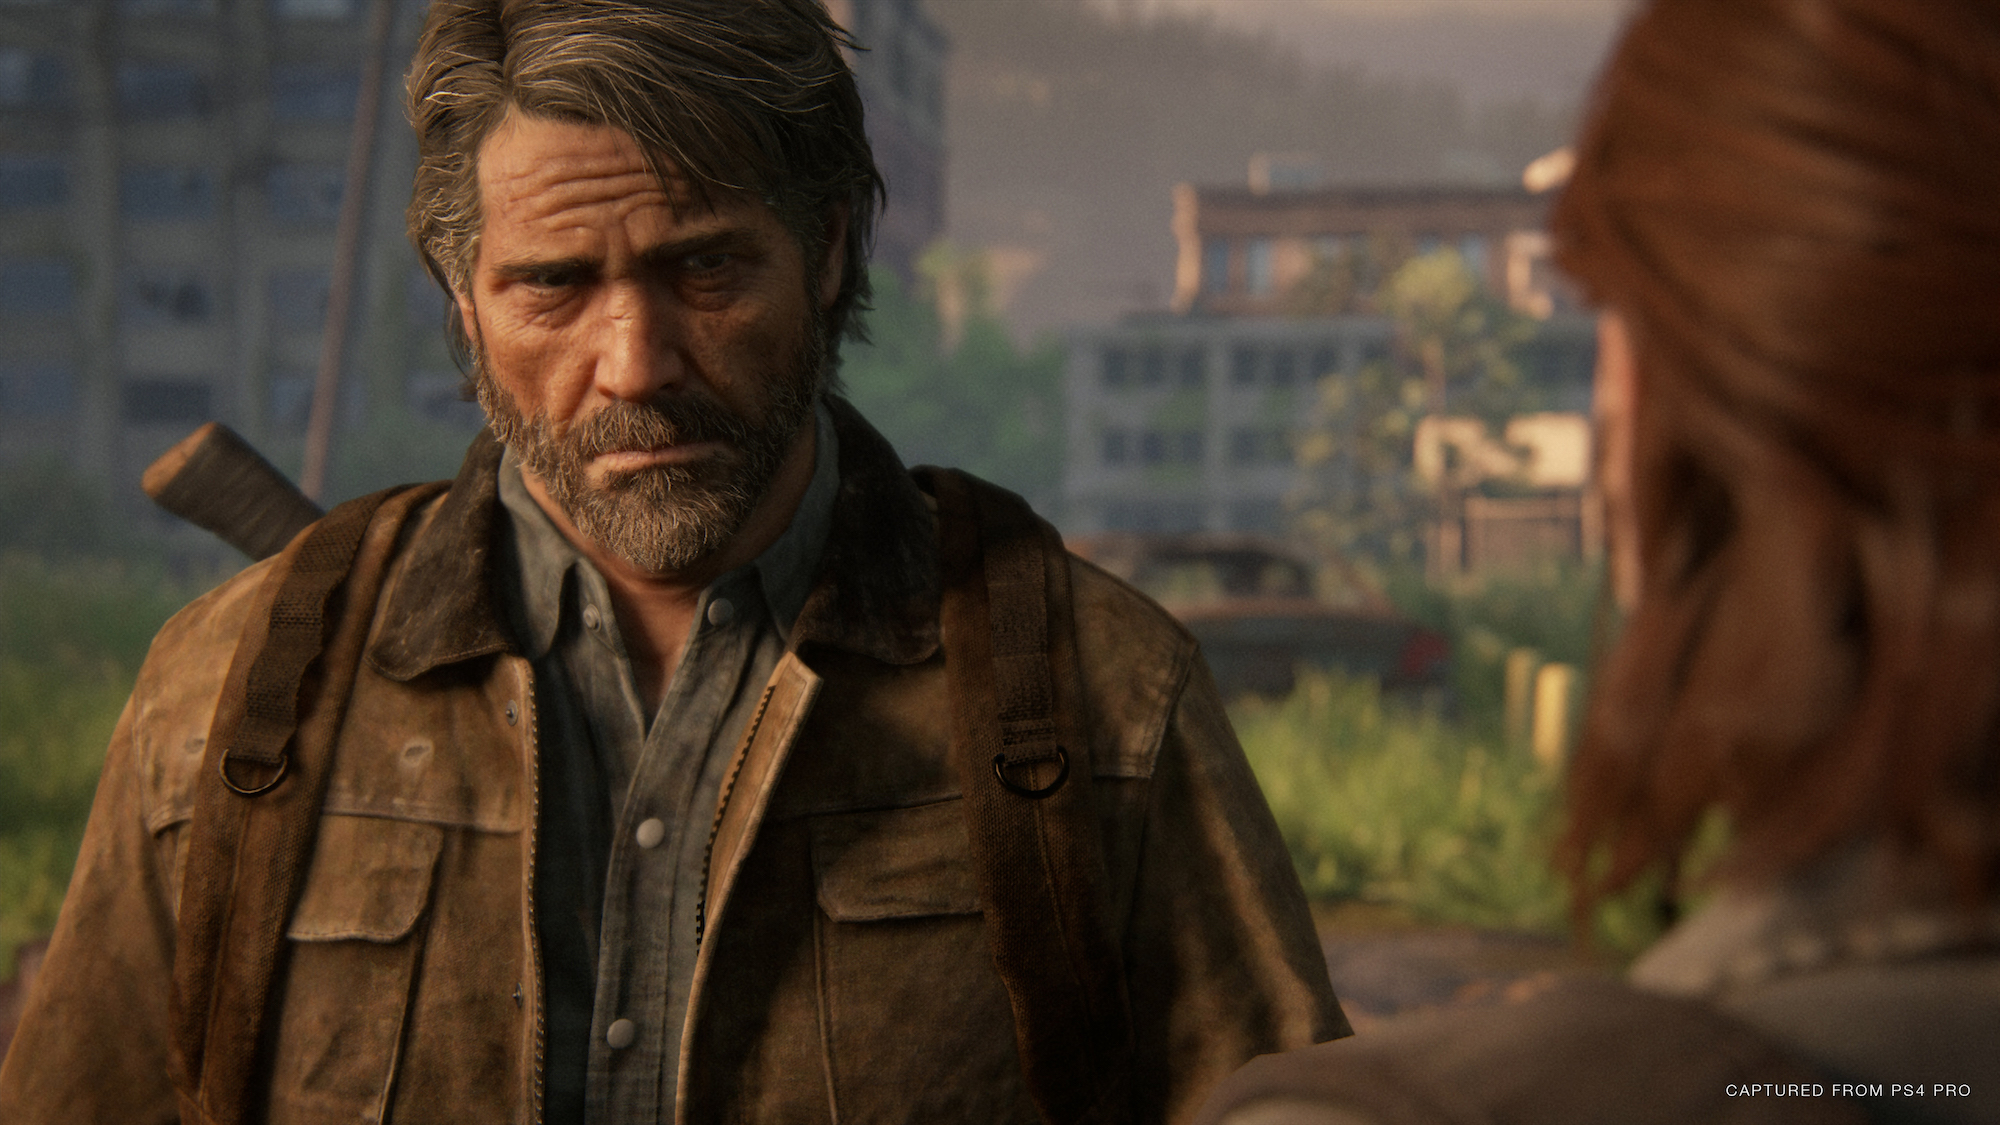 The Last of Us II on PS5 backwards compatibility